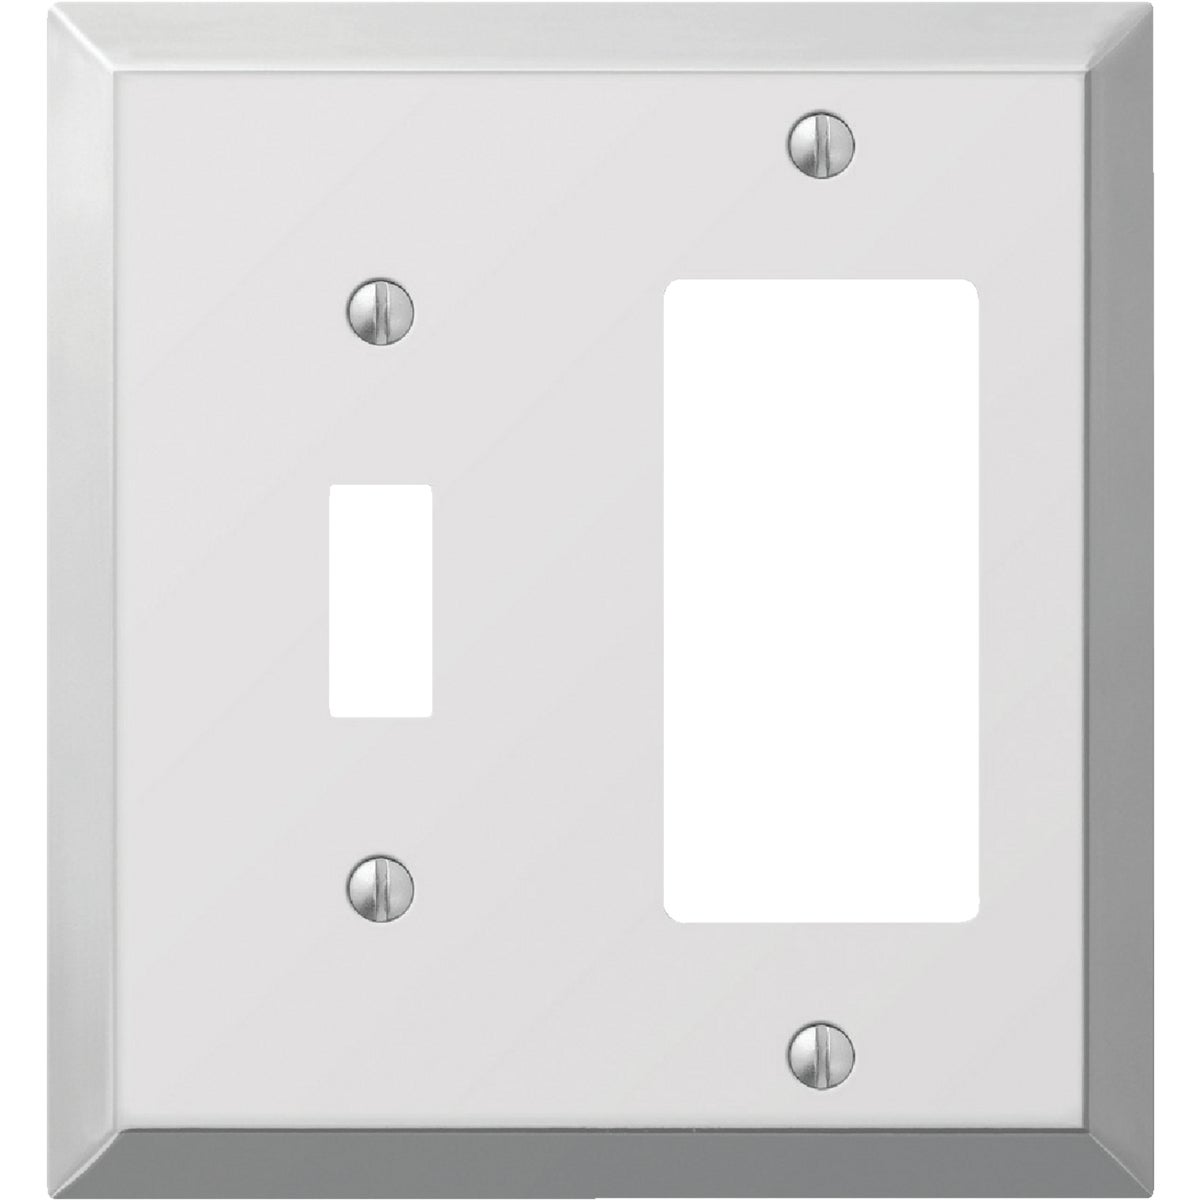 1TGL/1RCKR PC WALLPLATE